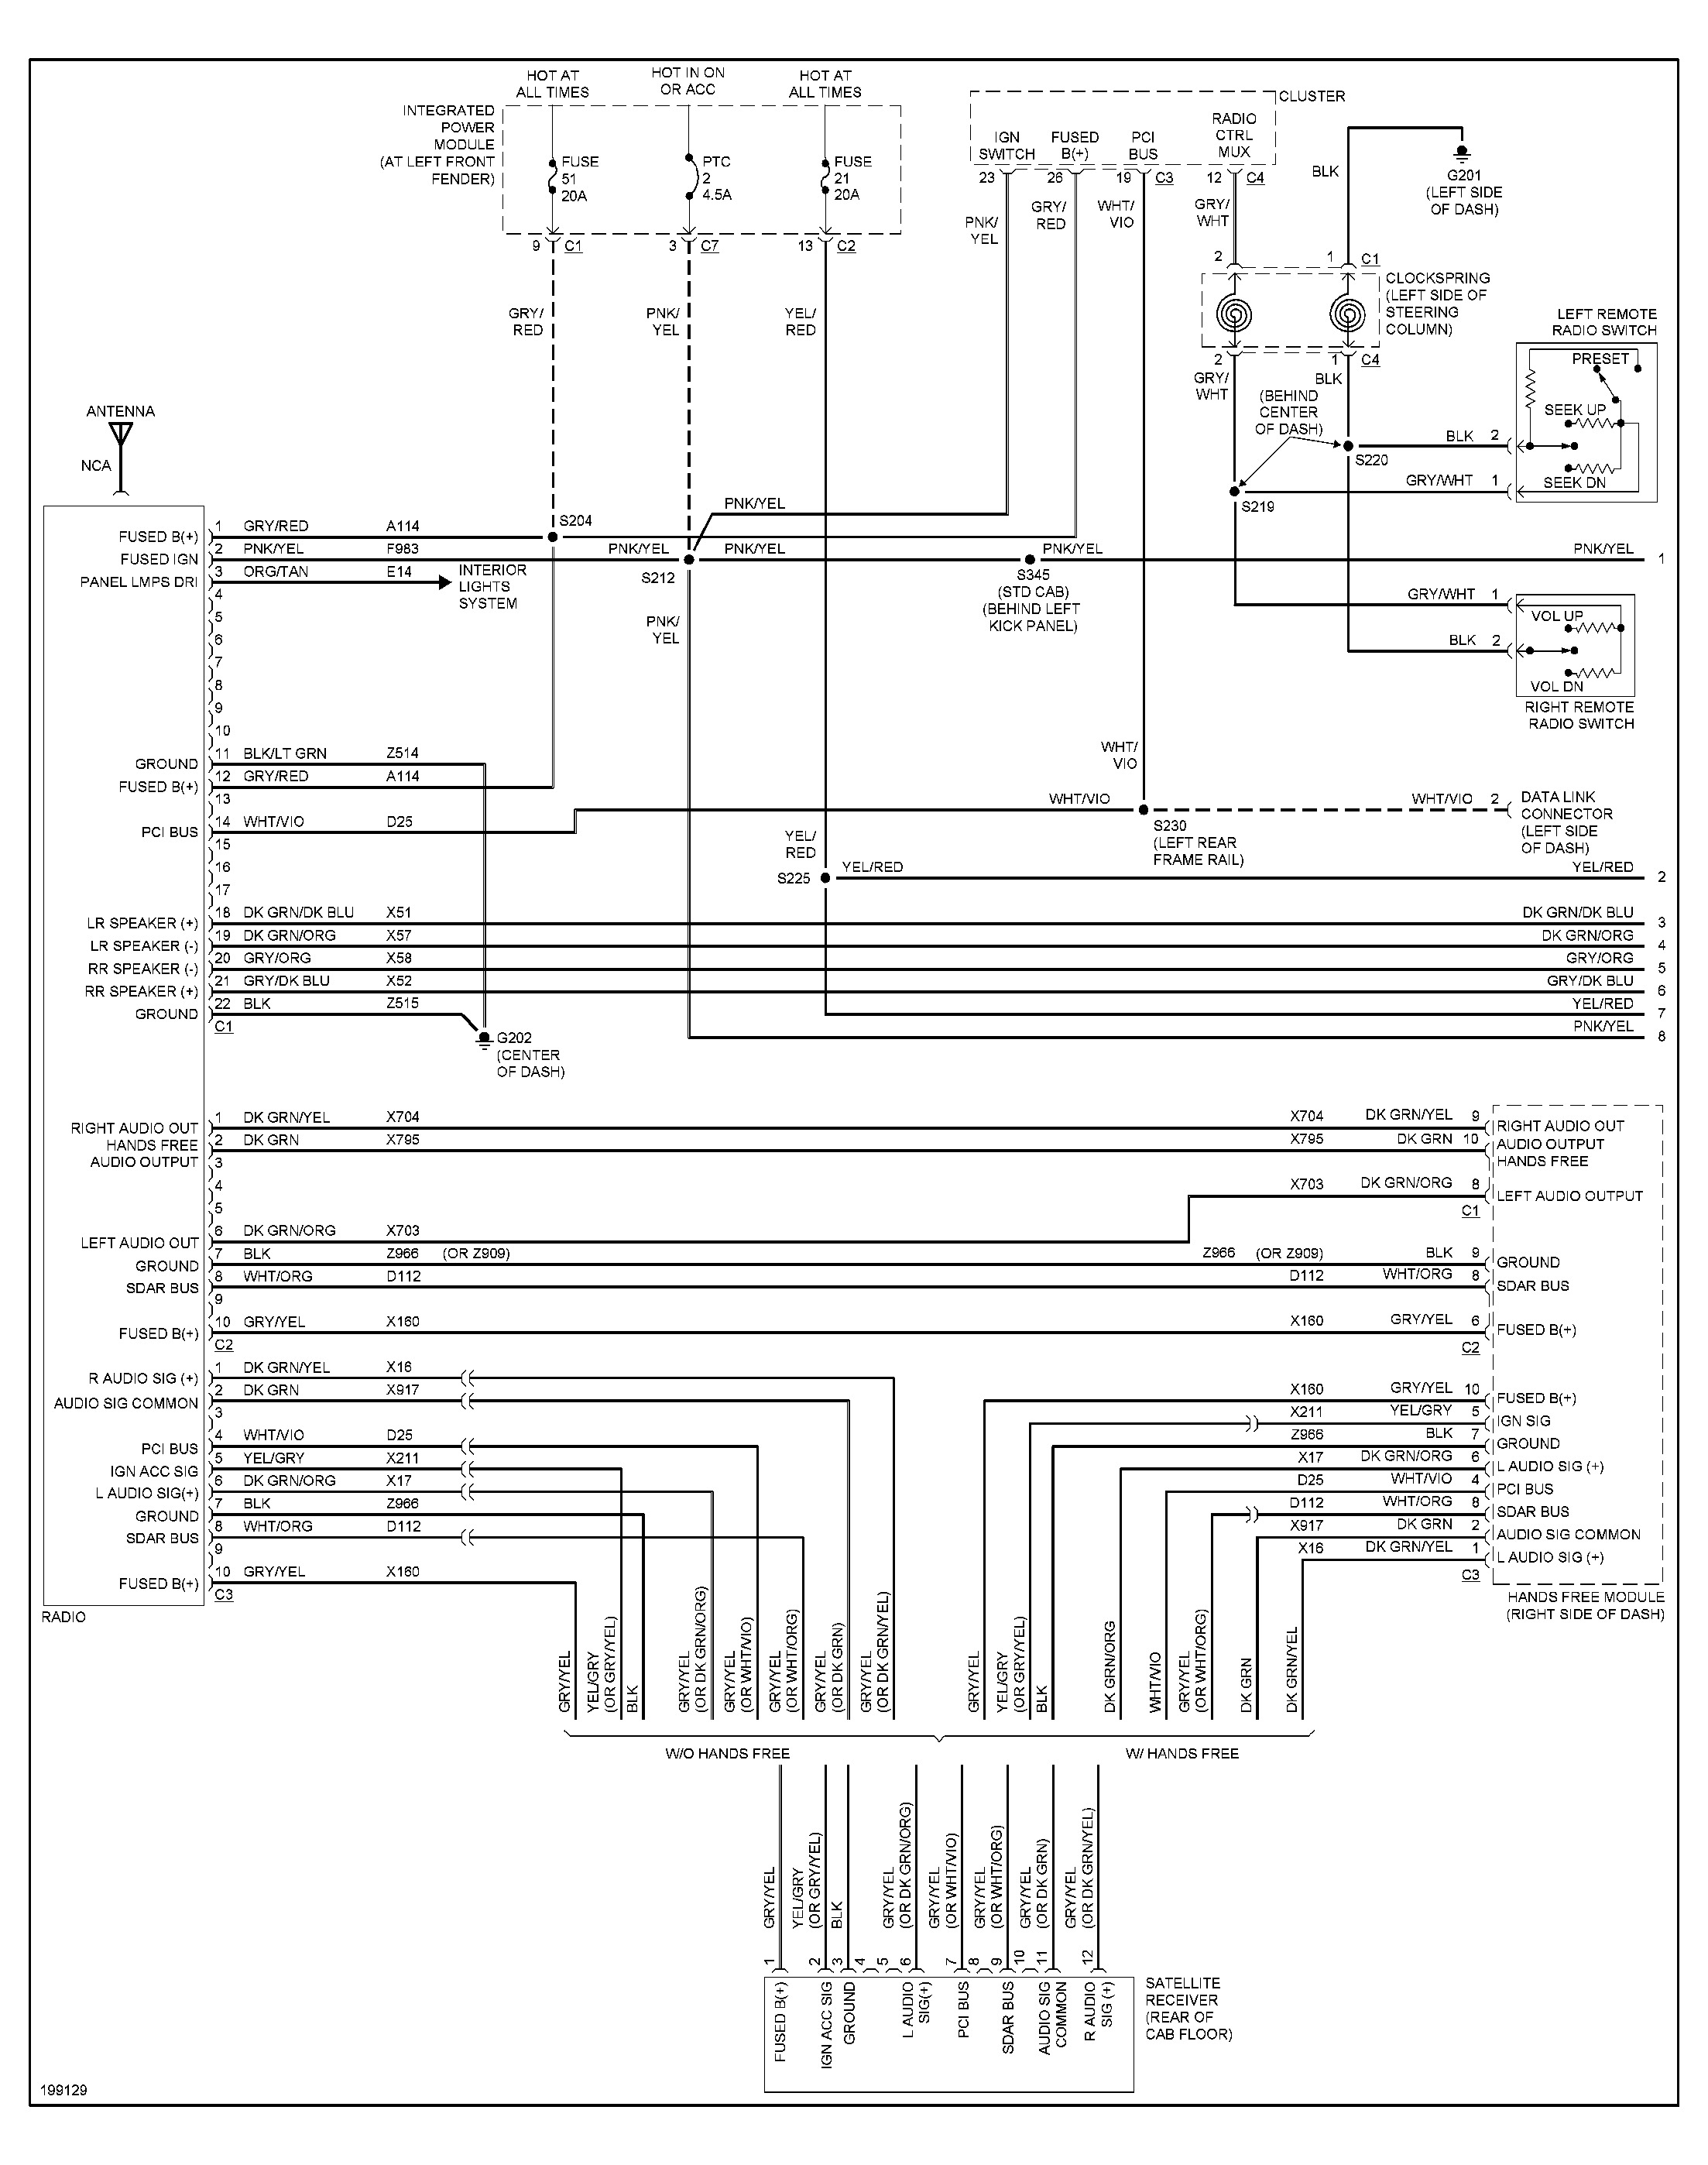 04 dodge ram wiring diagram dodge ram wiring diagram 2005 2005 dodge ram stereo: i have a 2005 dodge ram 1500 and i ... #10